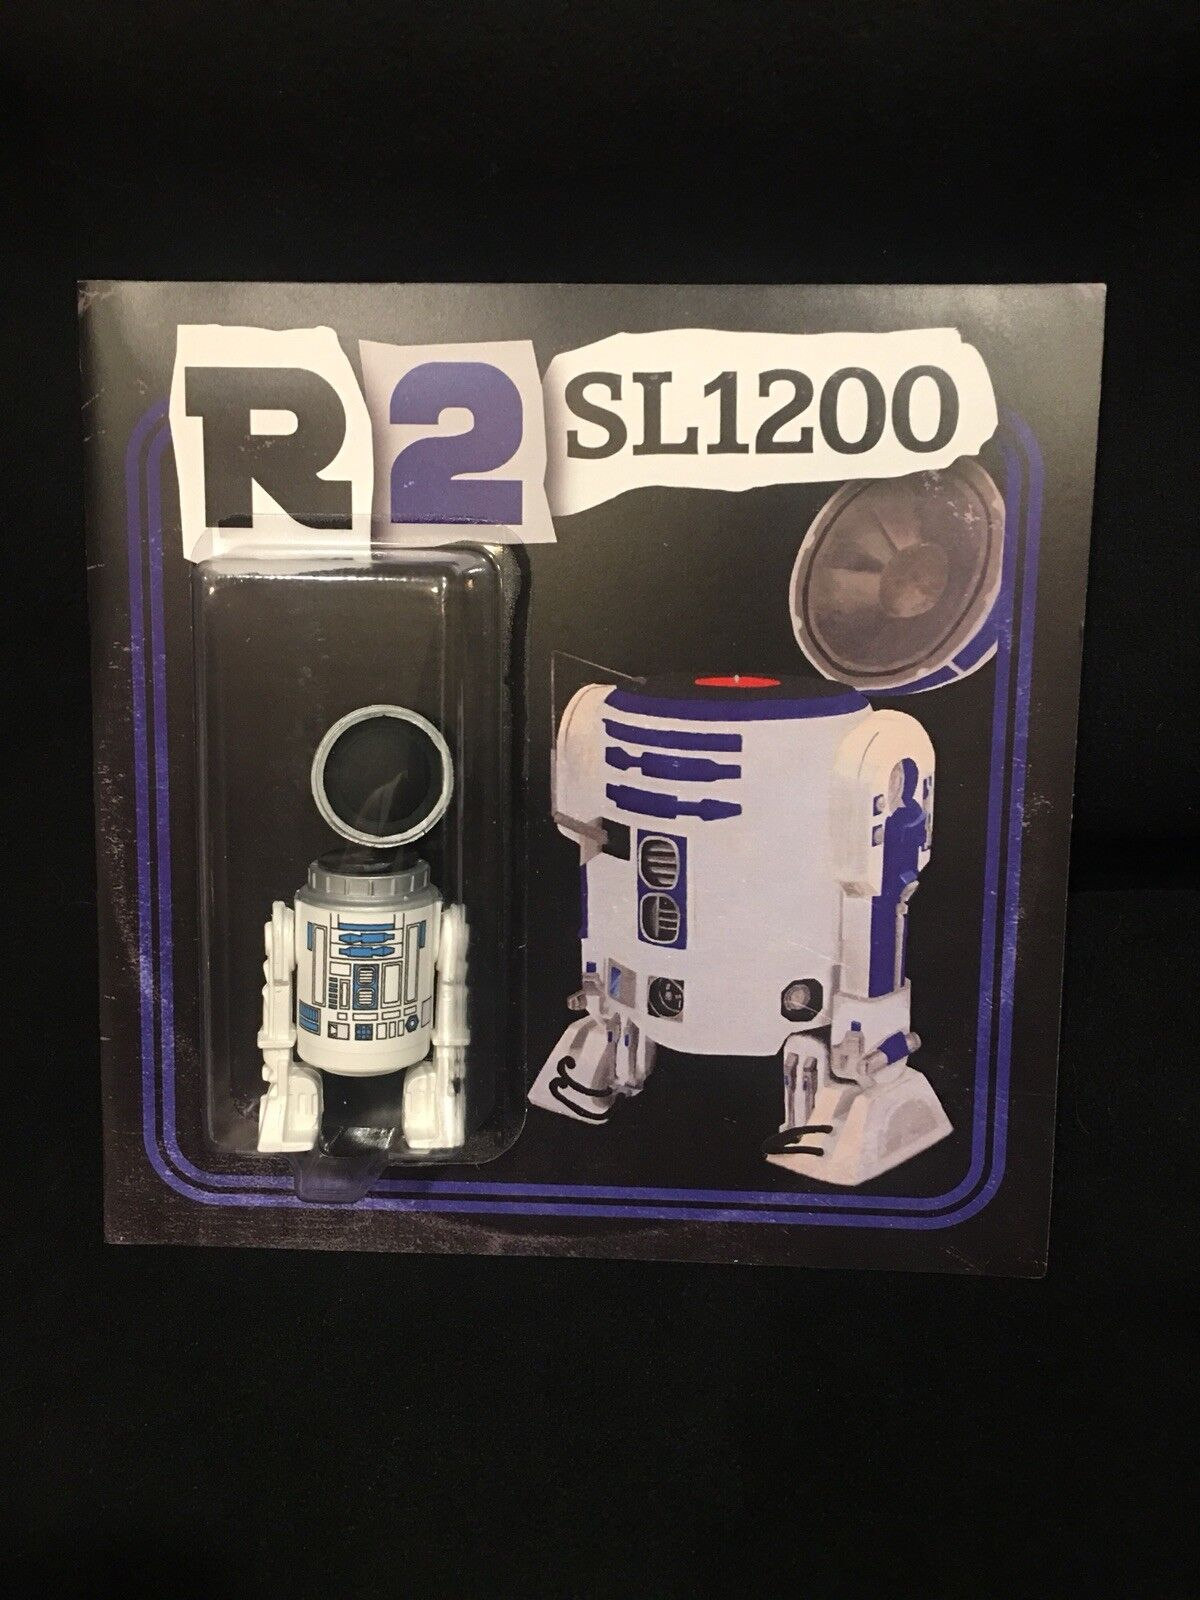 SDCC Exclusive DKE Star Wars R2 SL1200 with vinyl record